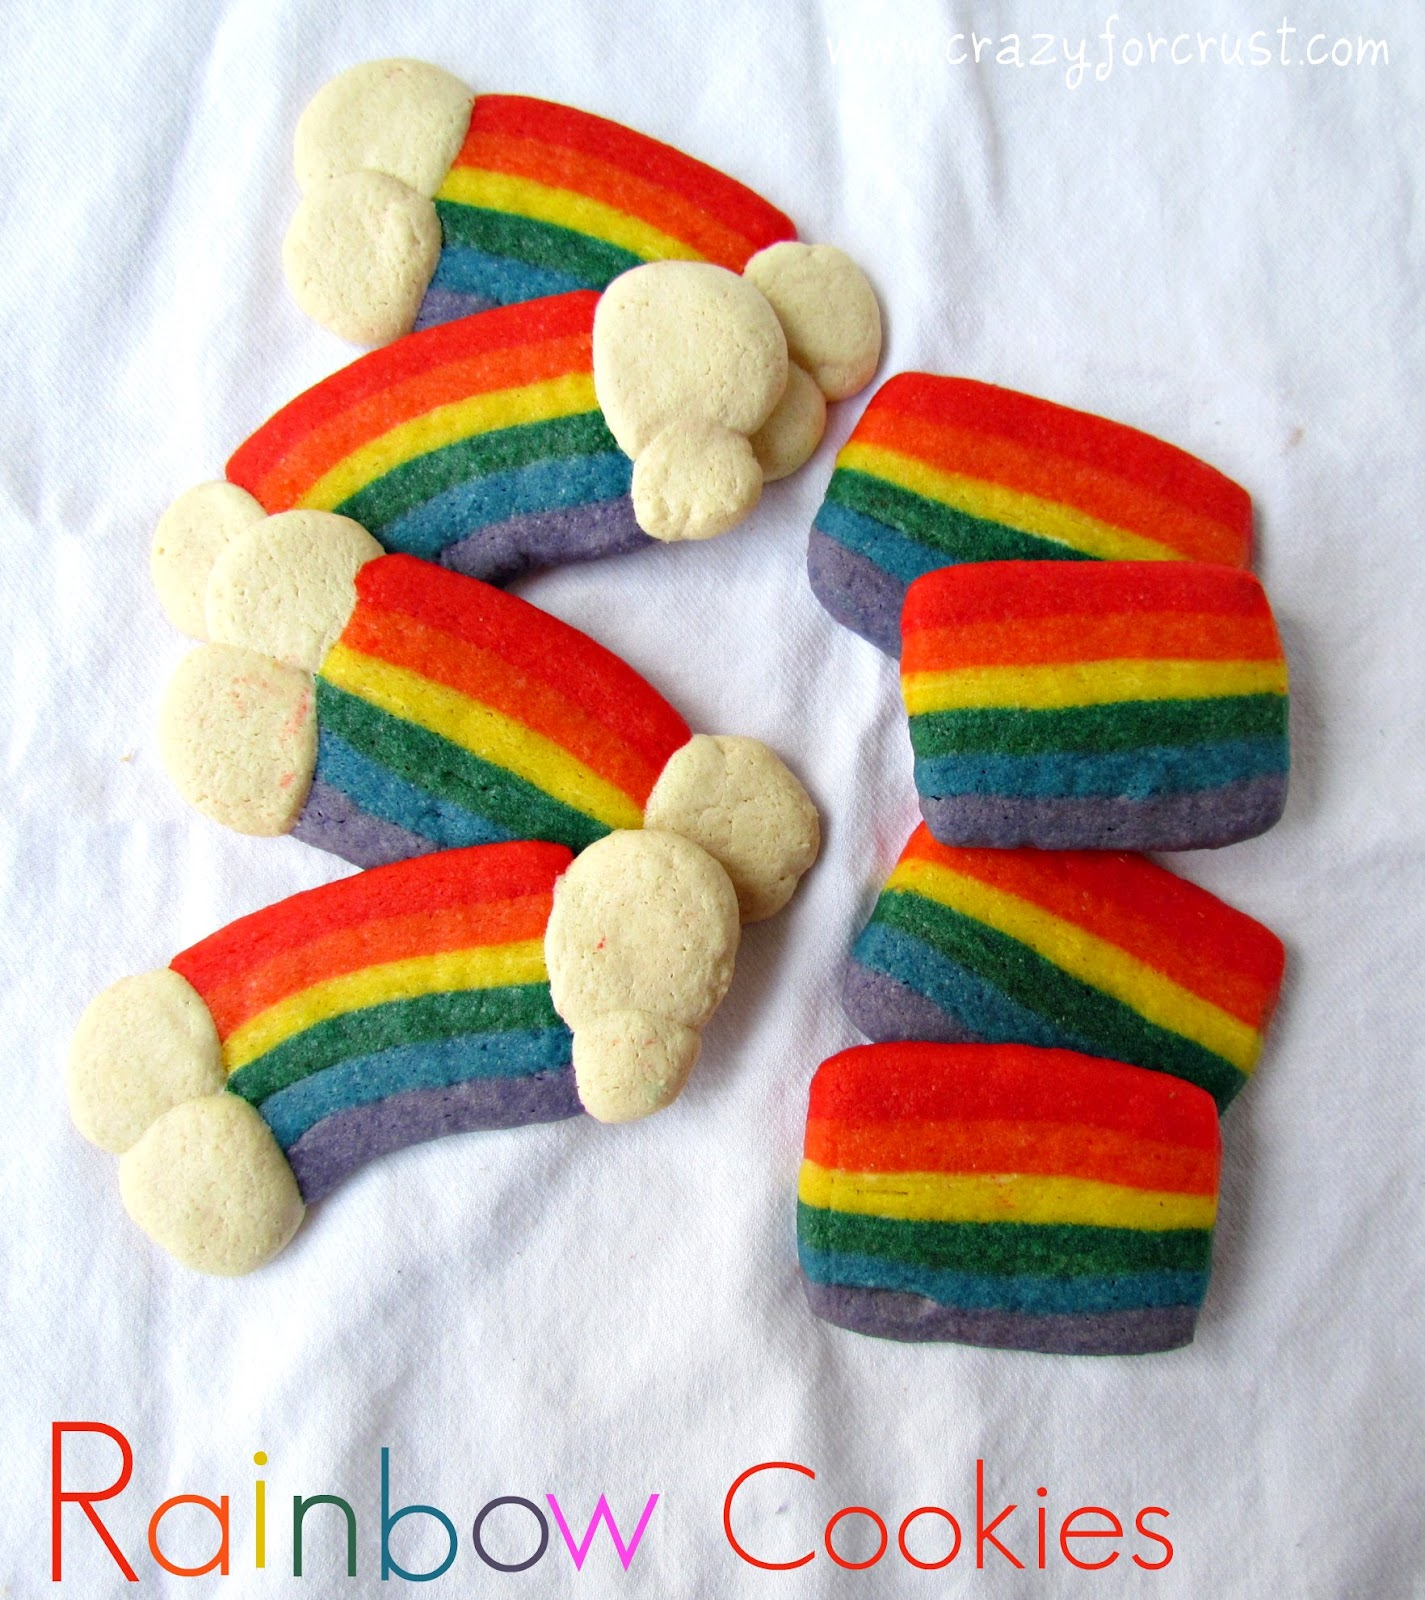 Rainbow Cookies {Slice and Bake} by www.crazyforcrust.com